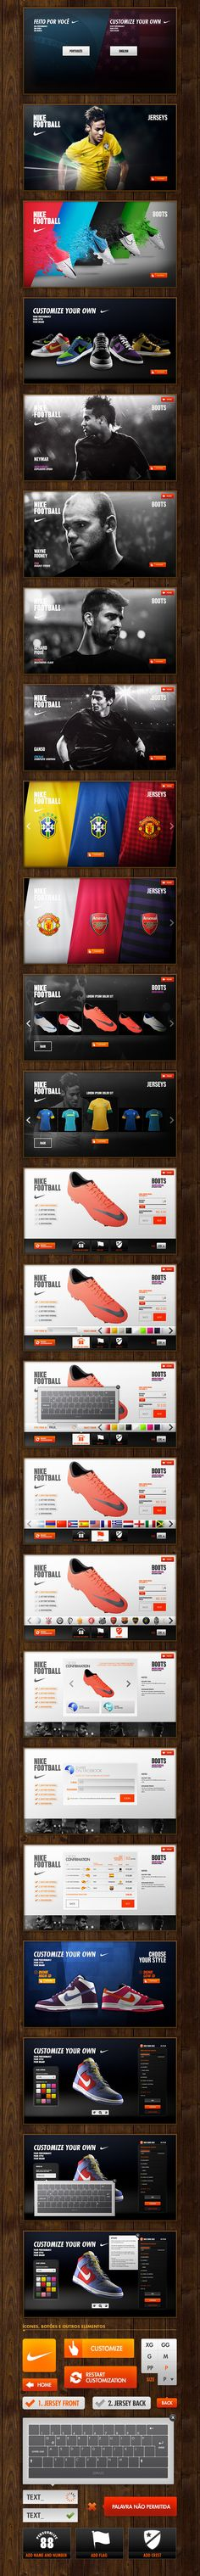 Nike Touch by Fabricio Alves, via Behance